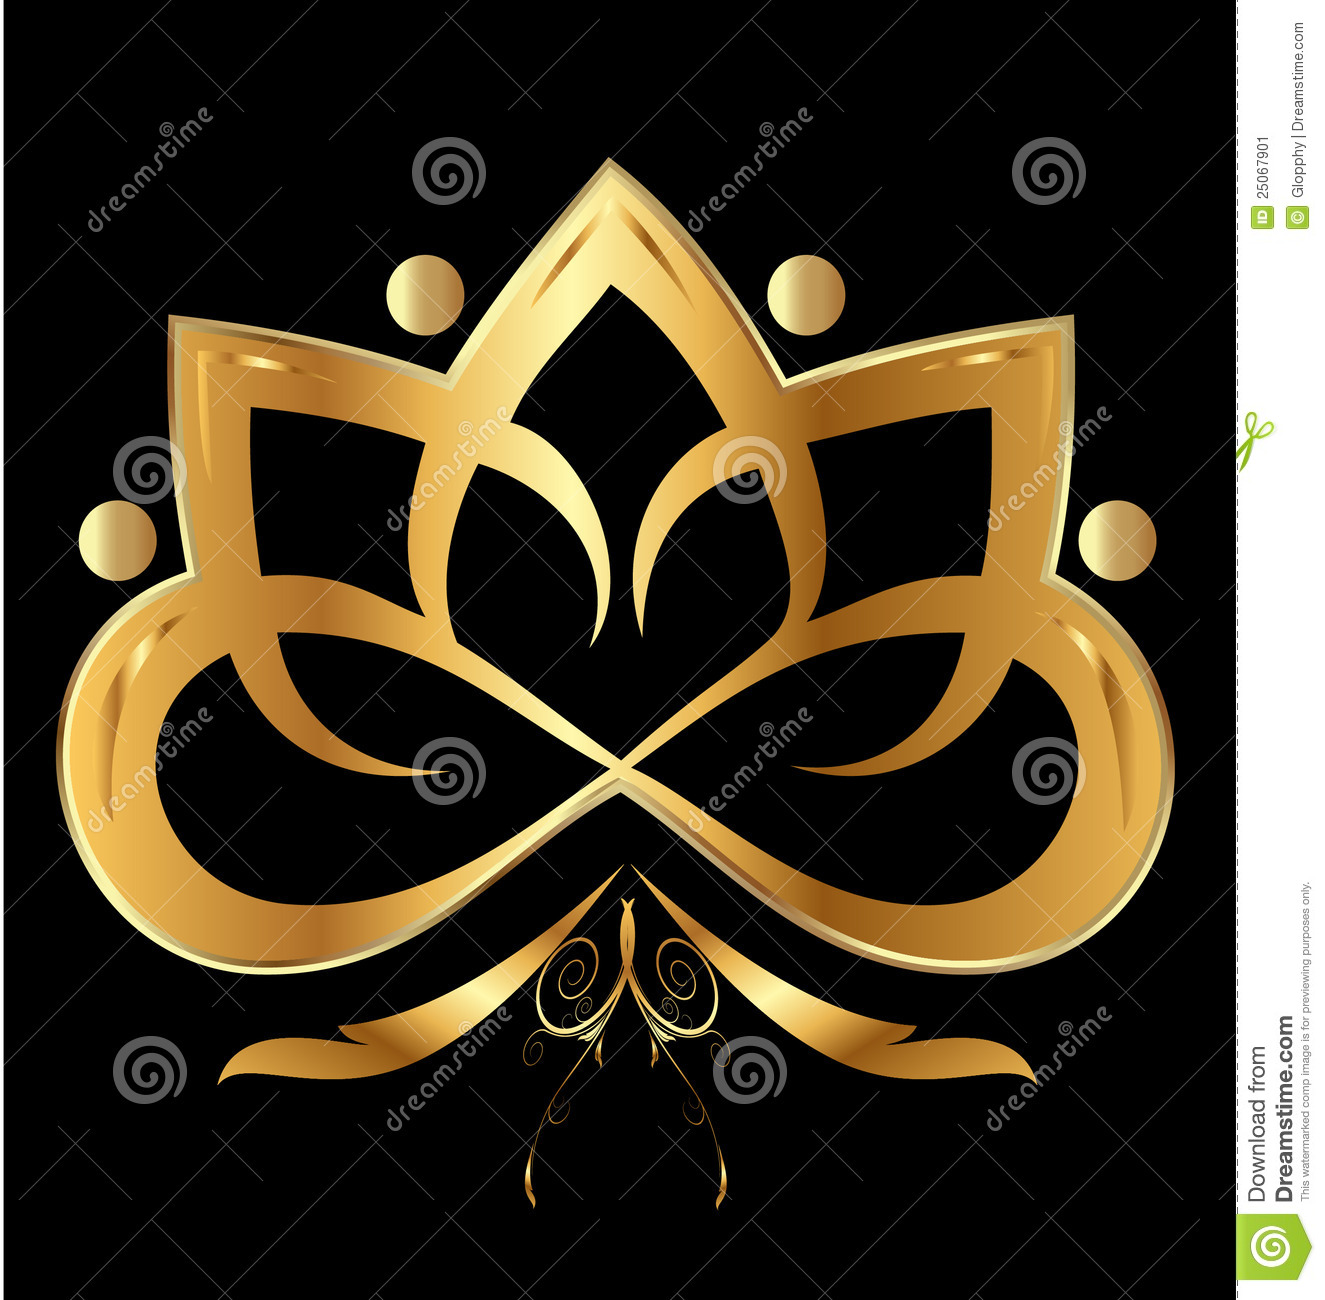 gold flower lotus ornament stock image image 25067901